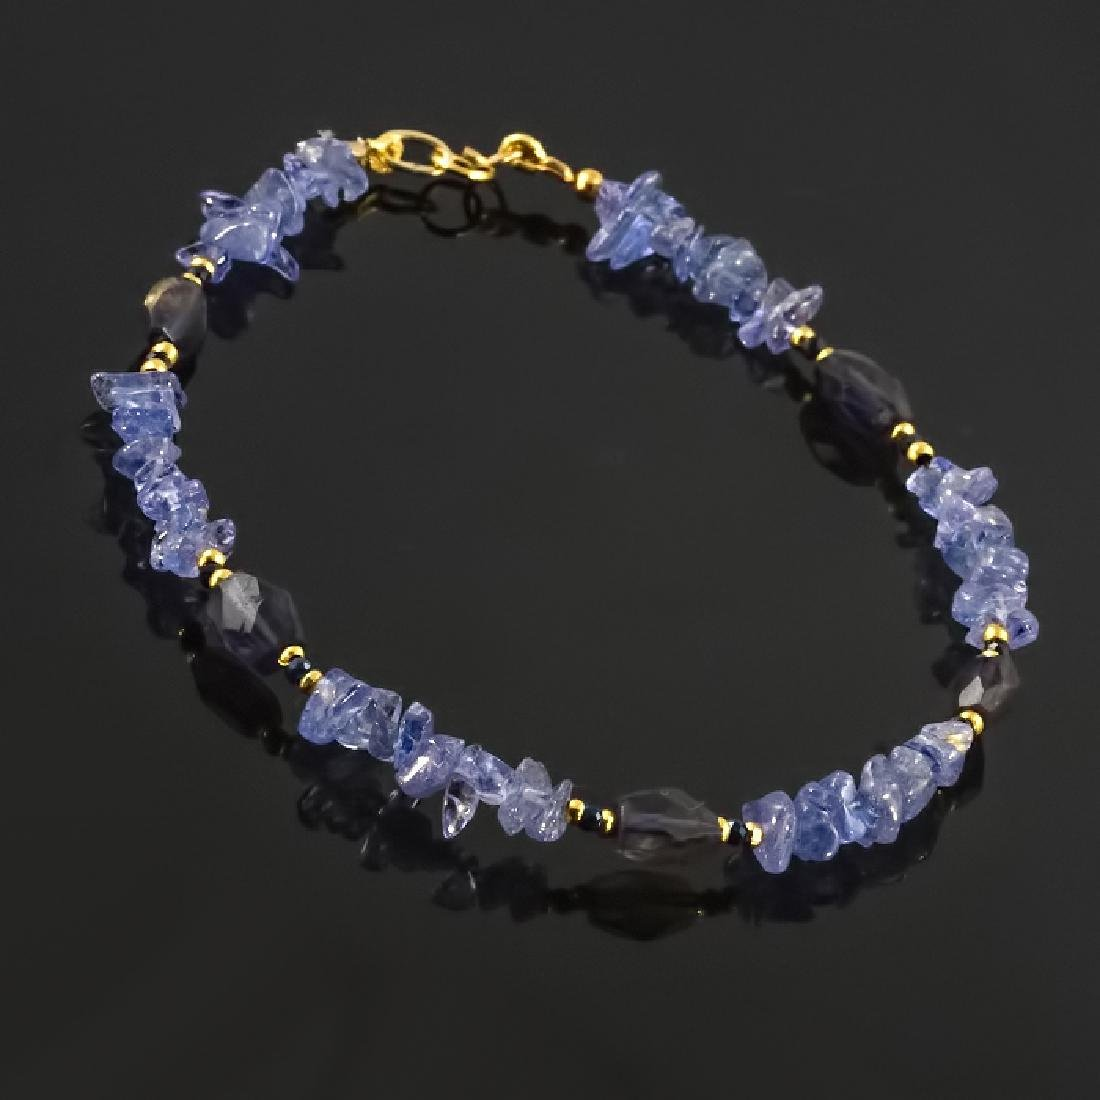 Tanzanite Bracelet with Sapphires - 3